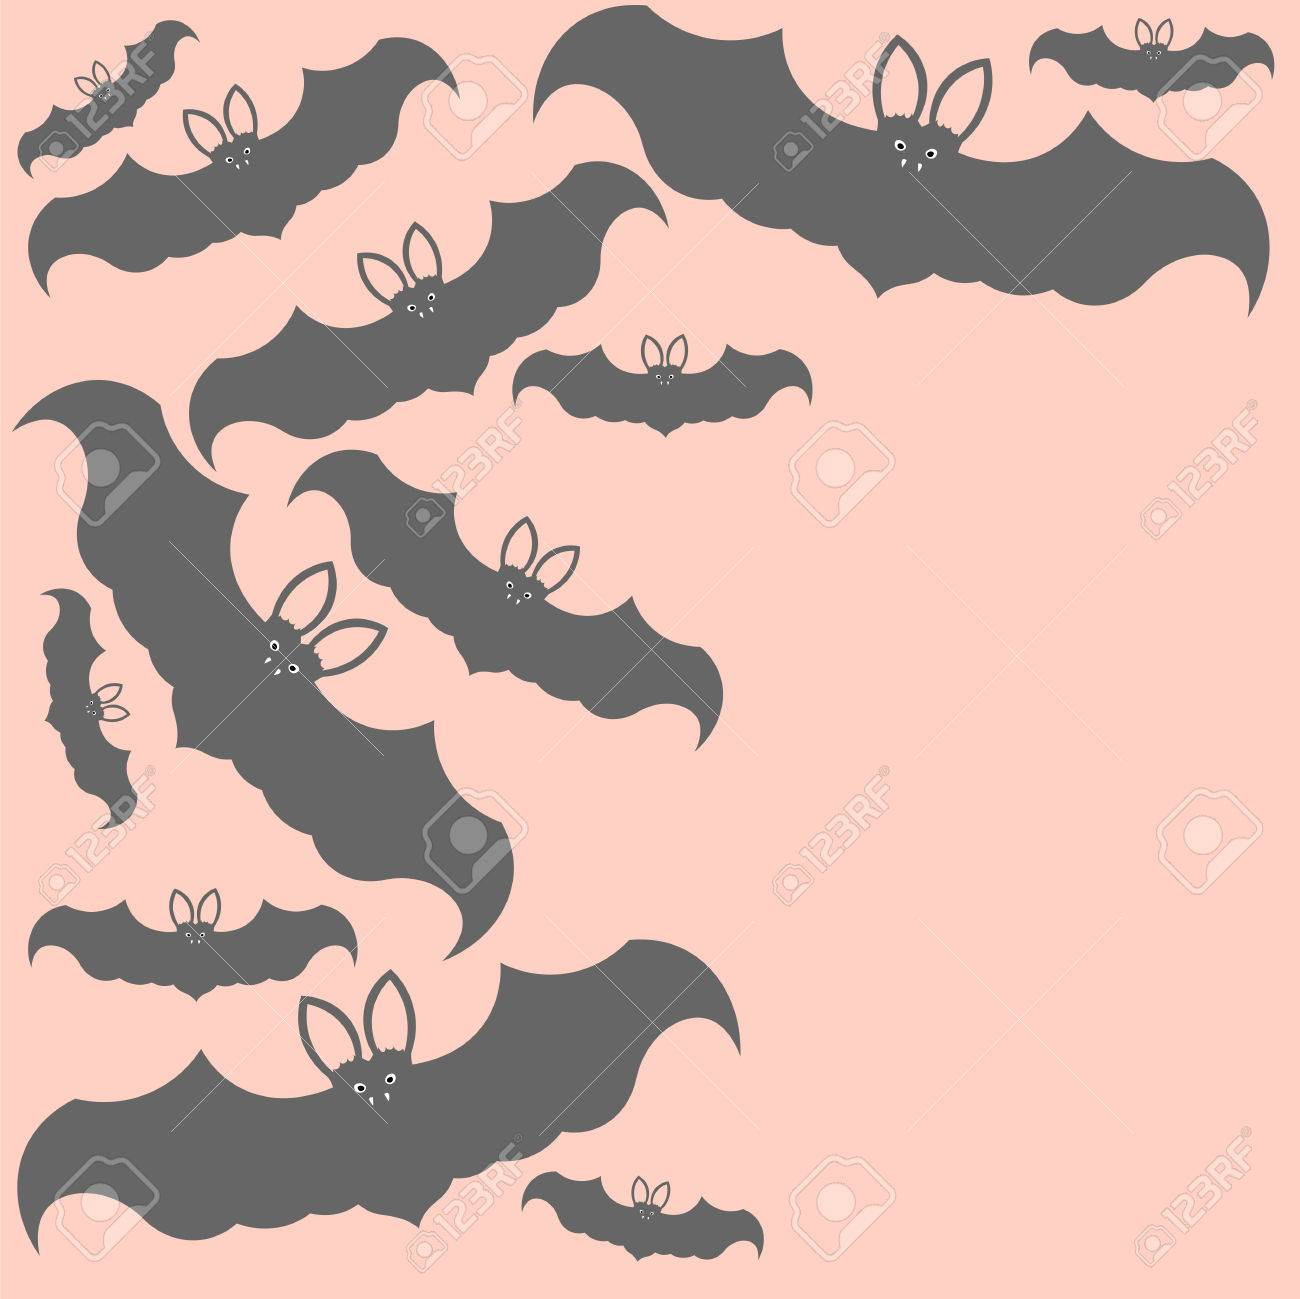 Beautiful Art Creative Colorful Halloween Holiday Wallpaper Vector Il Ration Frame Of Many Grey Flying Bats On